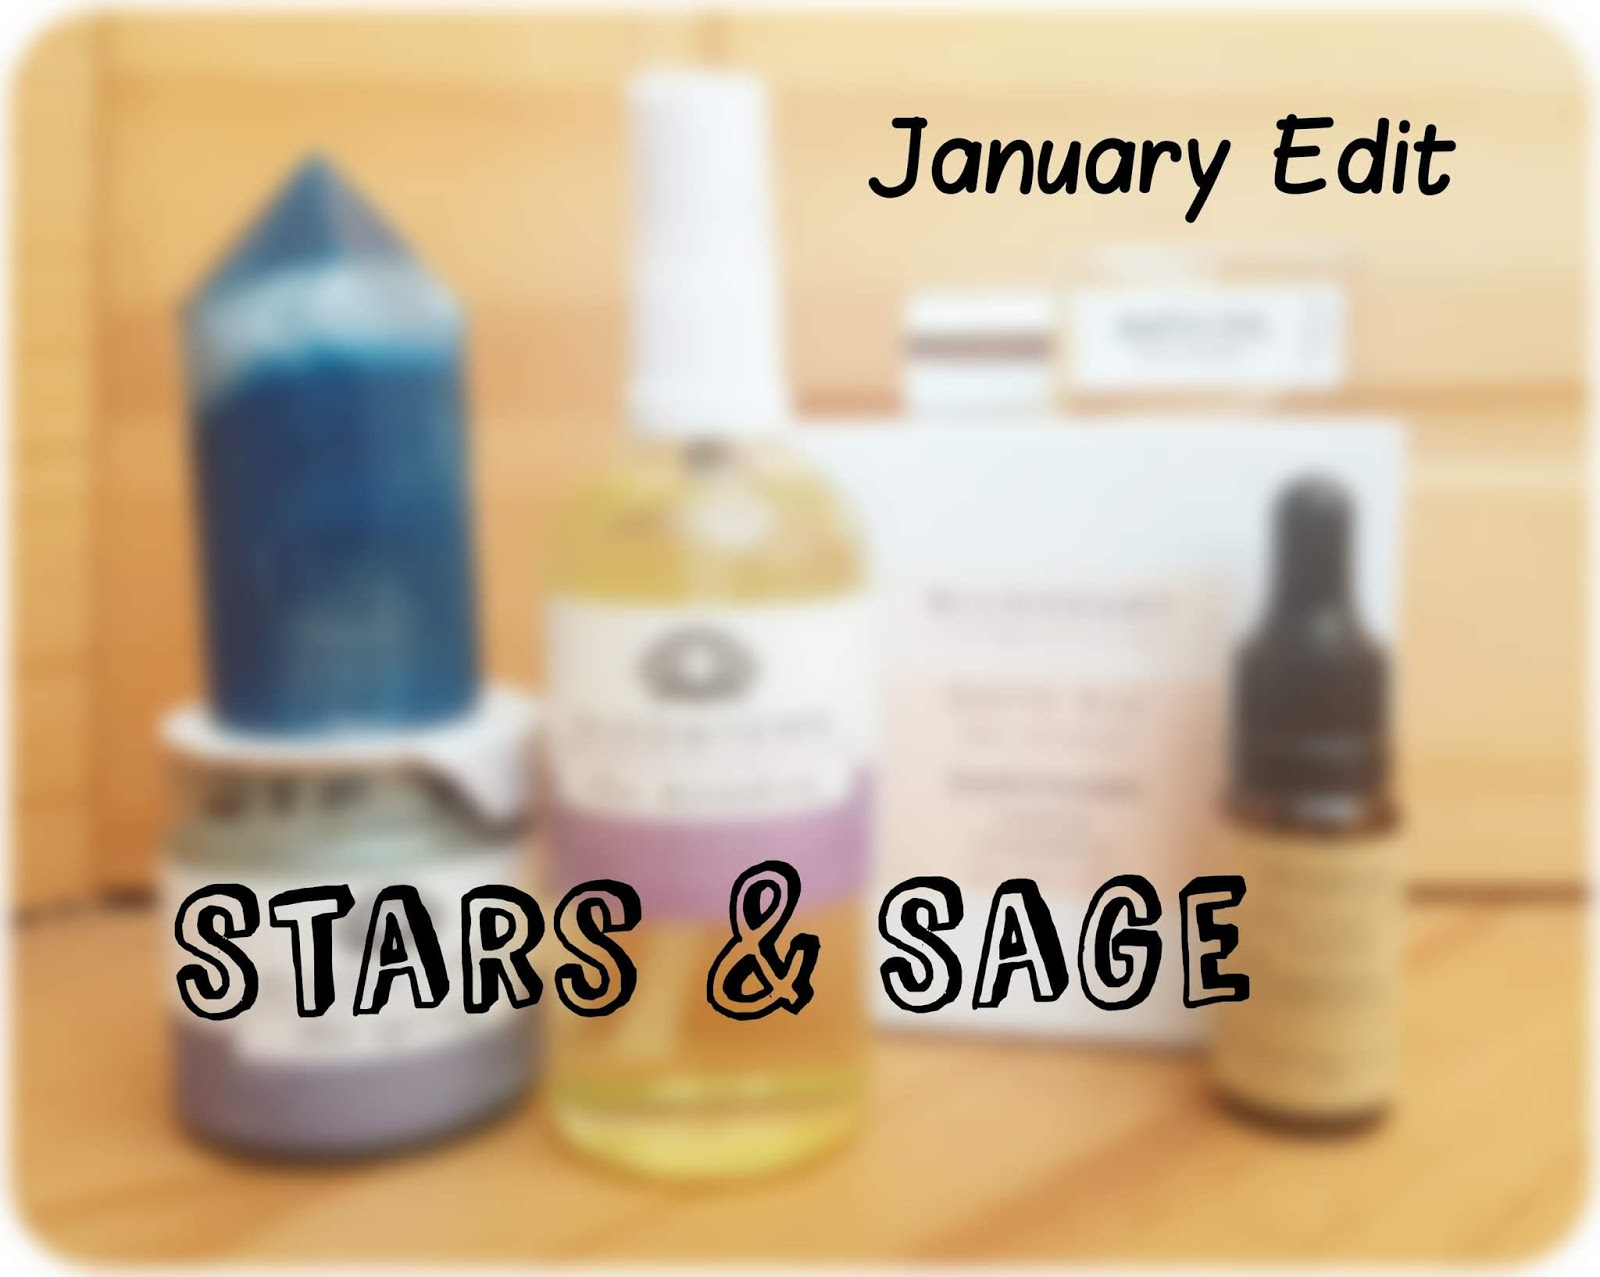 Stars & Sage subscription box January products